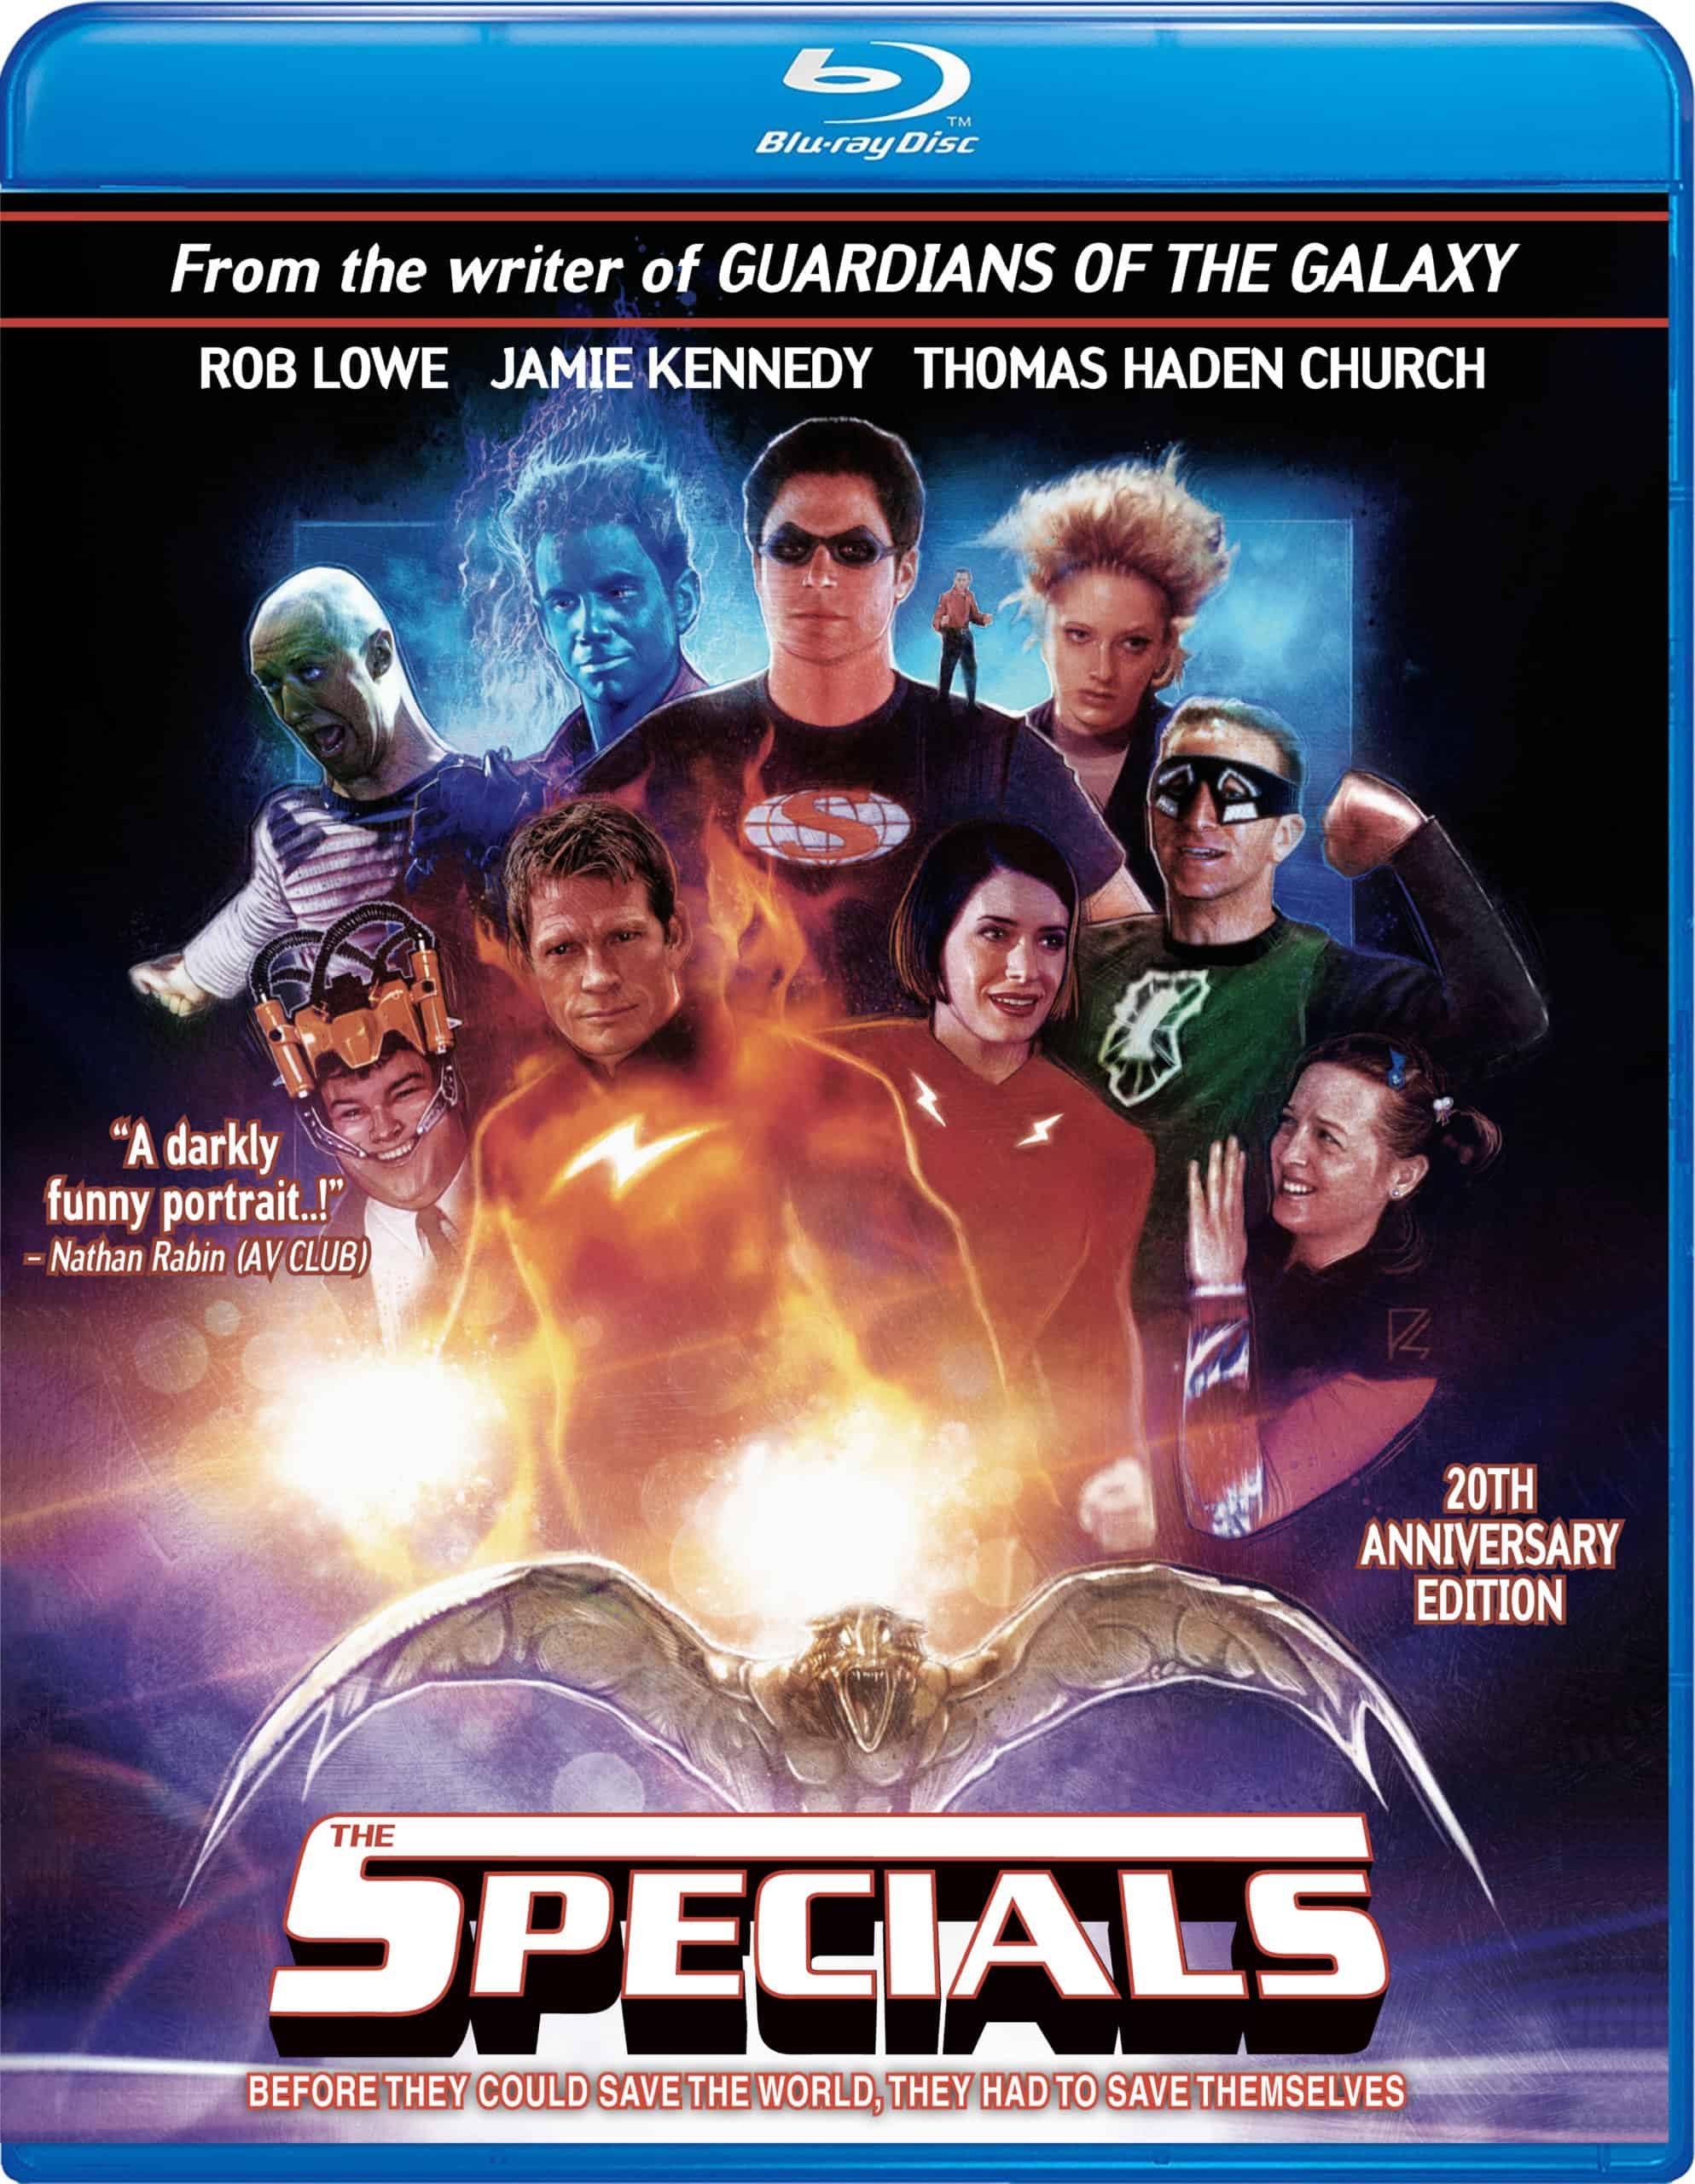 LOOK OUT! THE SPECIALS are coming to Blu-ray! First time on HD on Blu Ray! 2